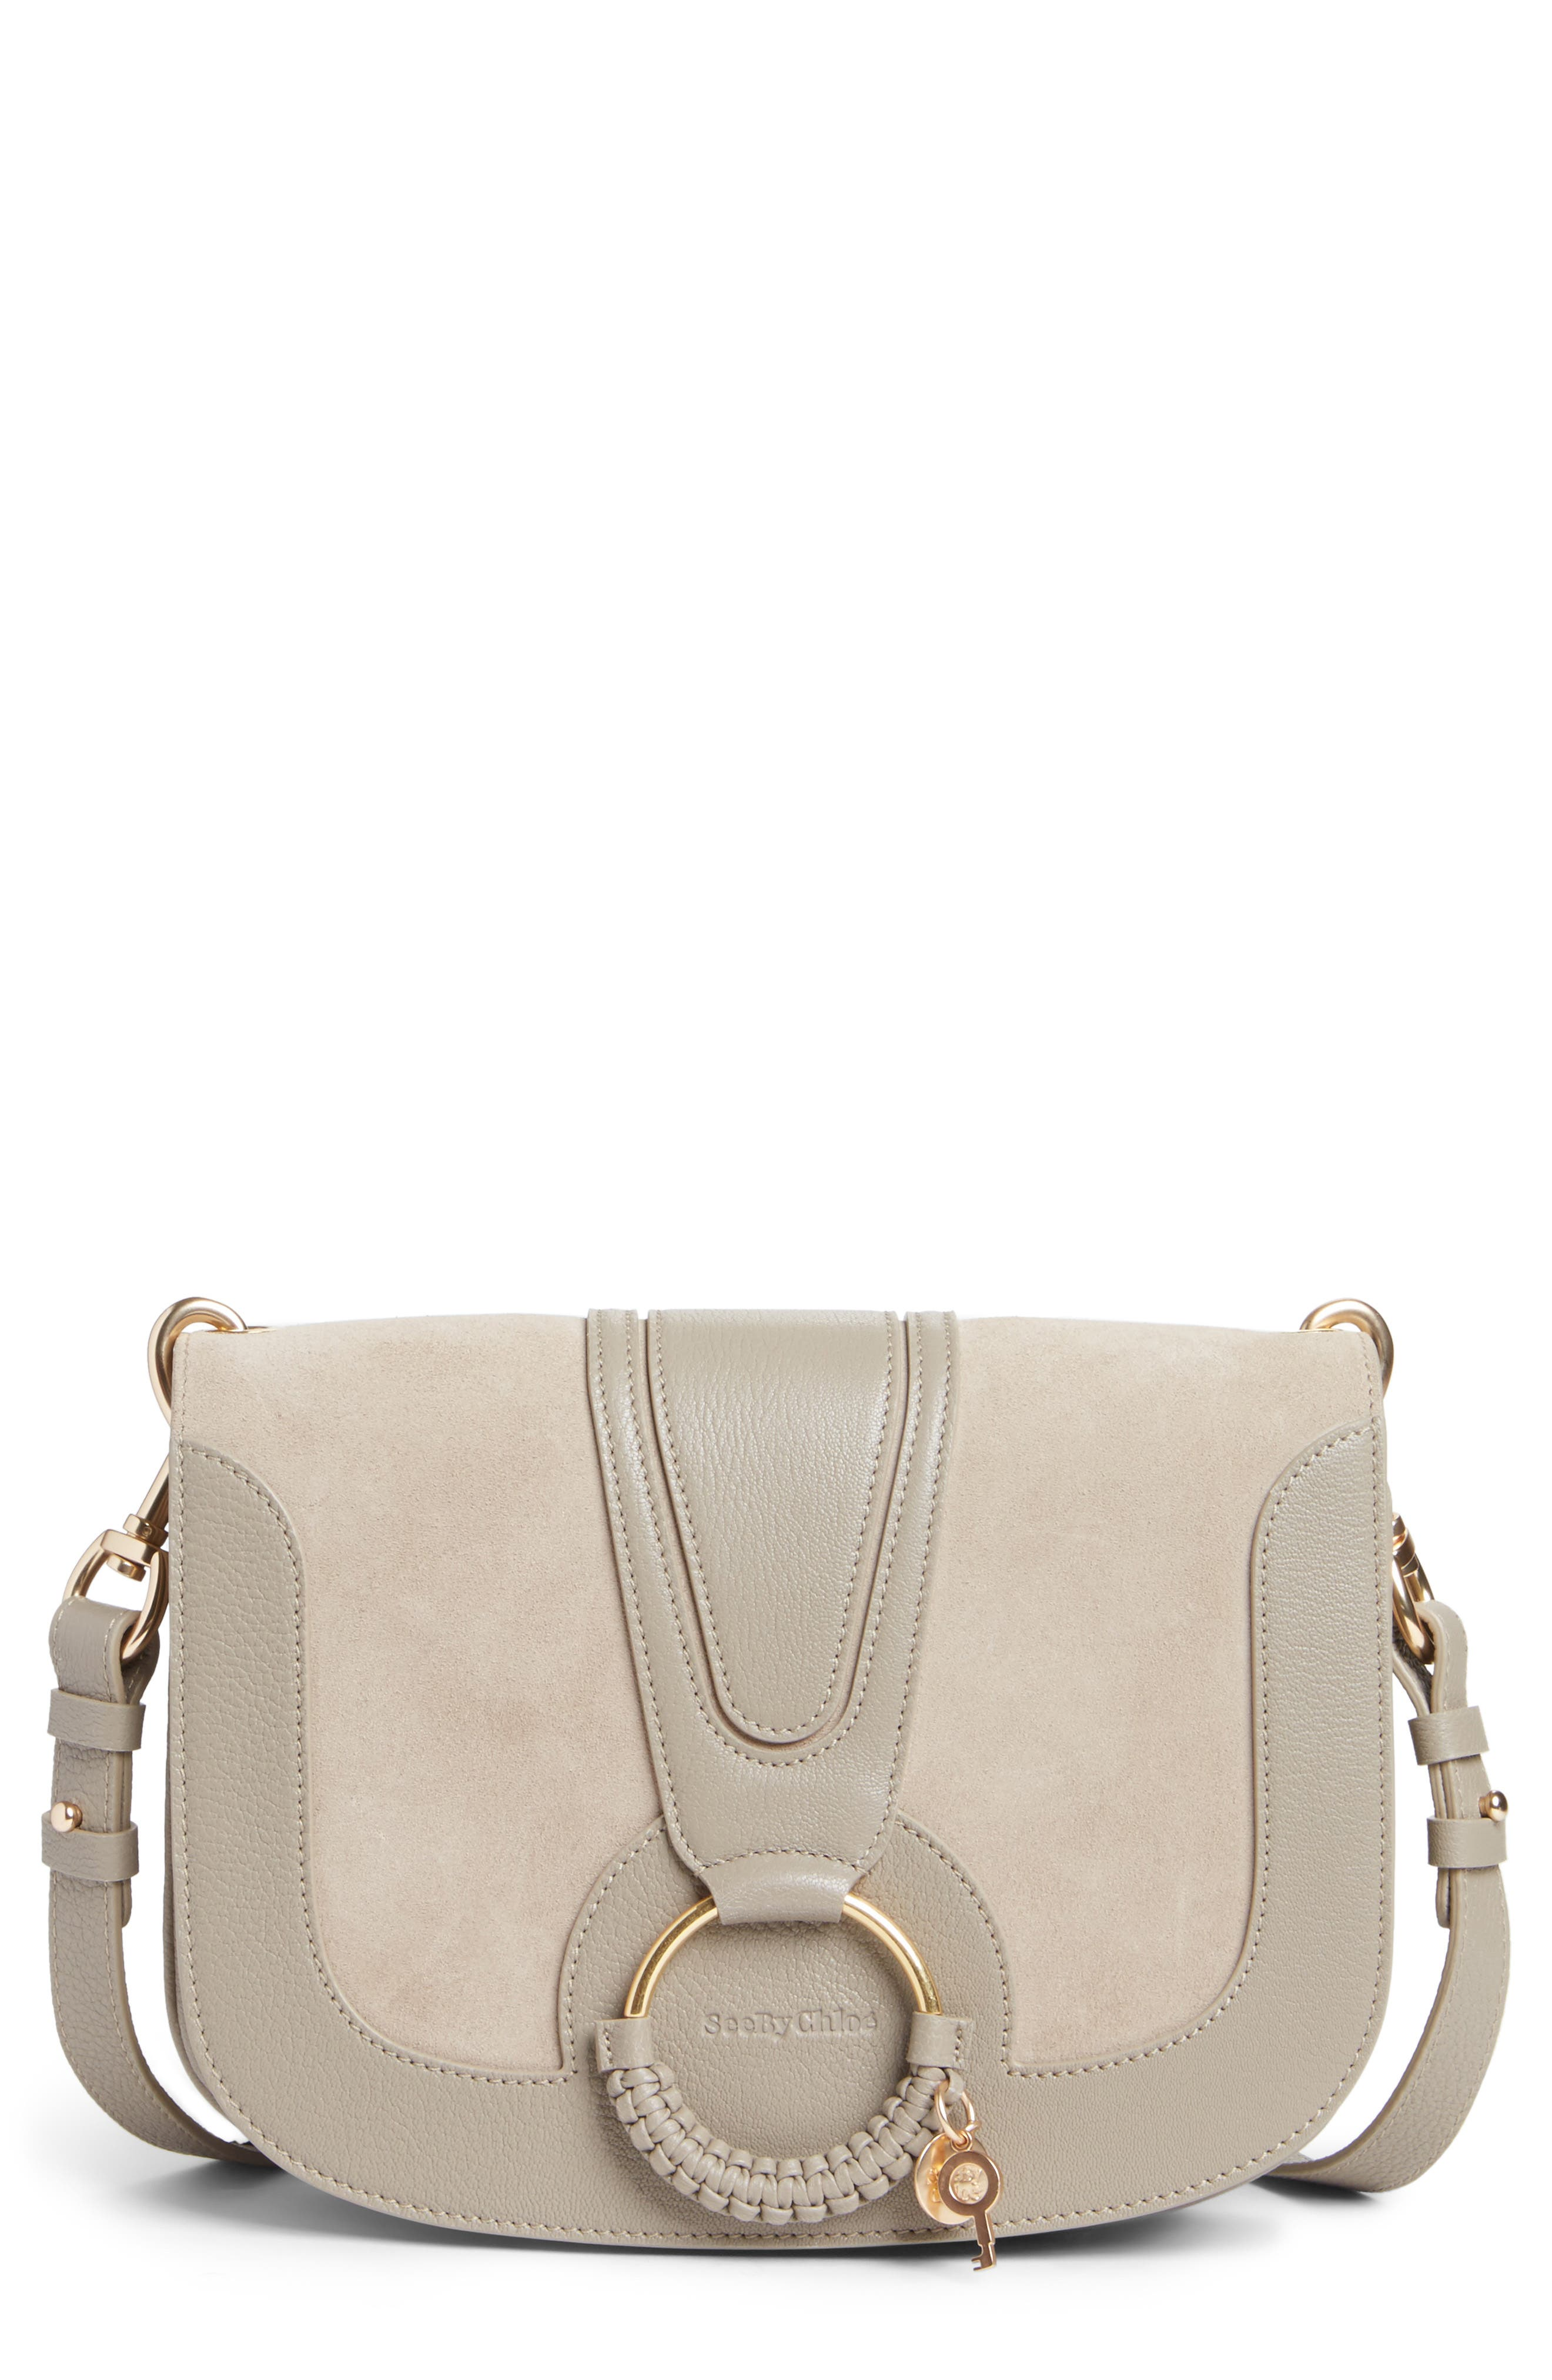 Medium Hana Leather Satchel,                         Main,                         color, 032